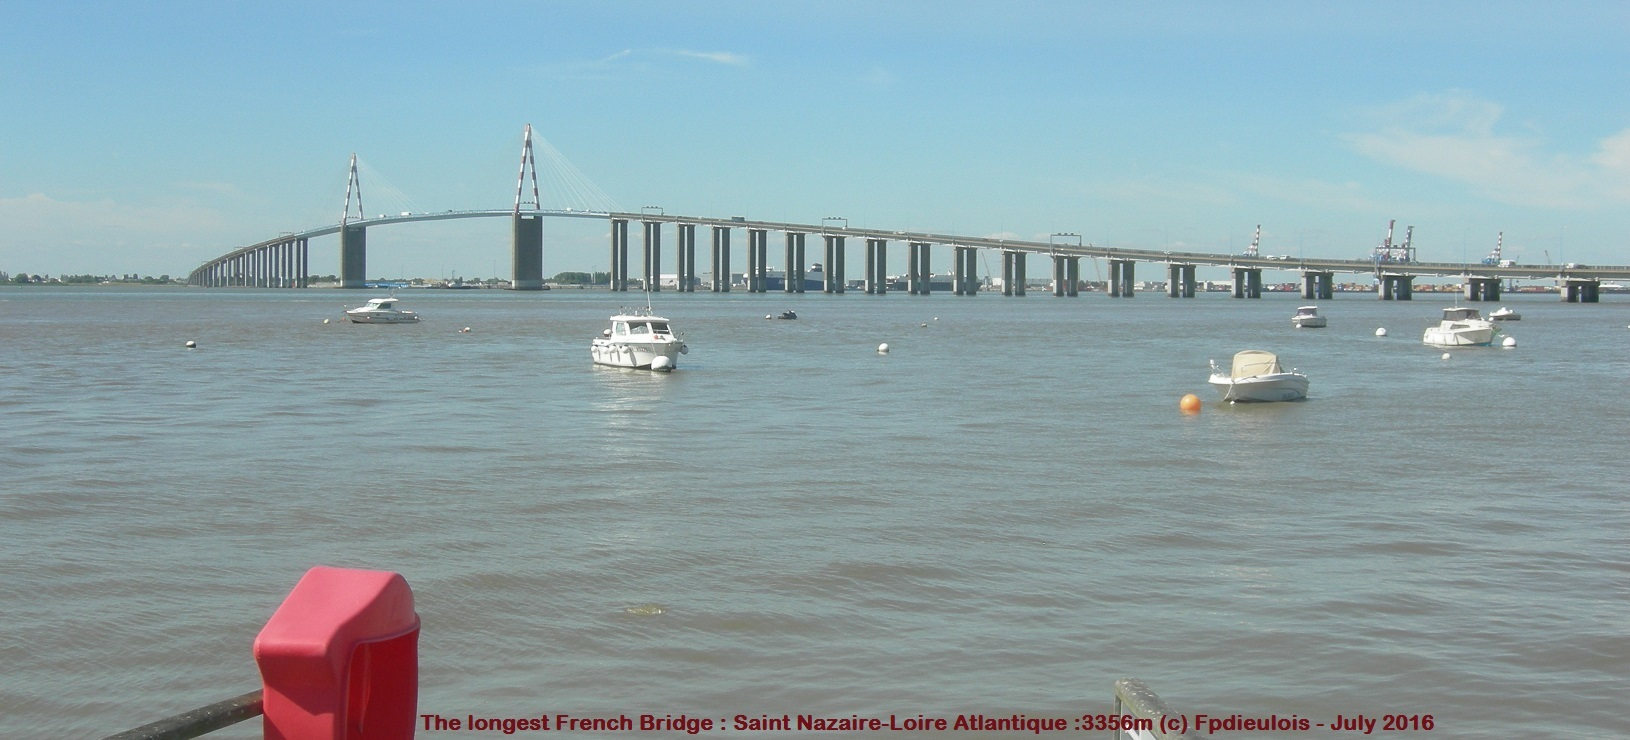 LONGEST FRENCH BRIDGE :3356m SAINT NAZAIRE-DIEULOIS